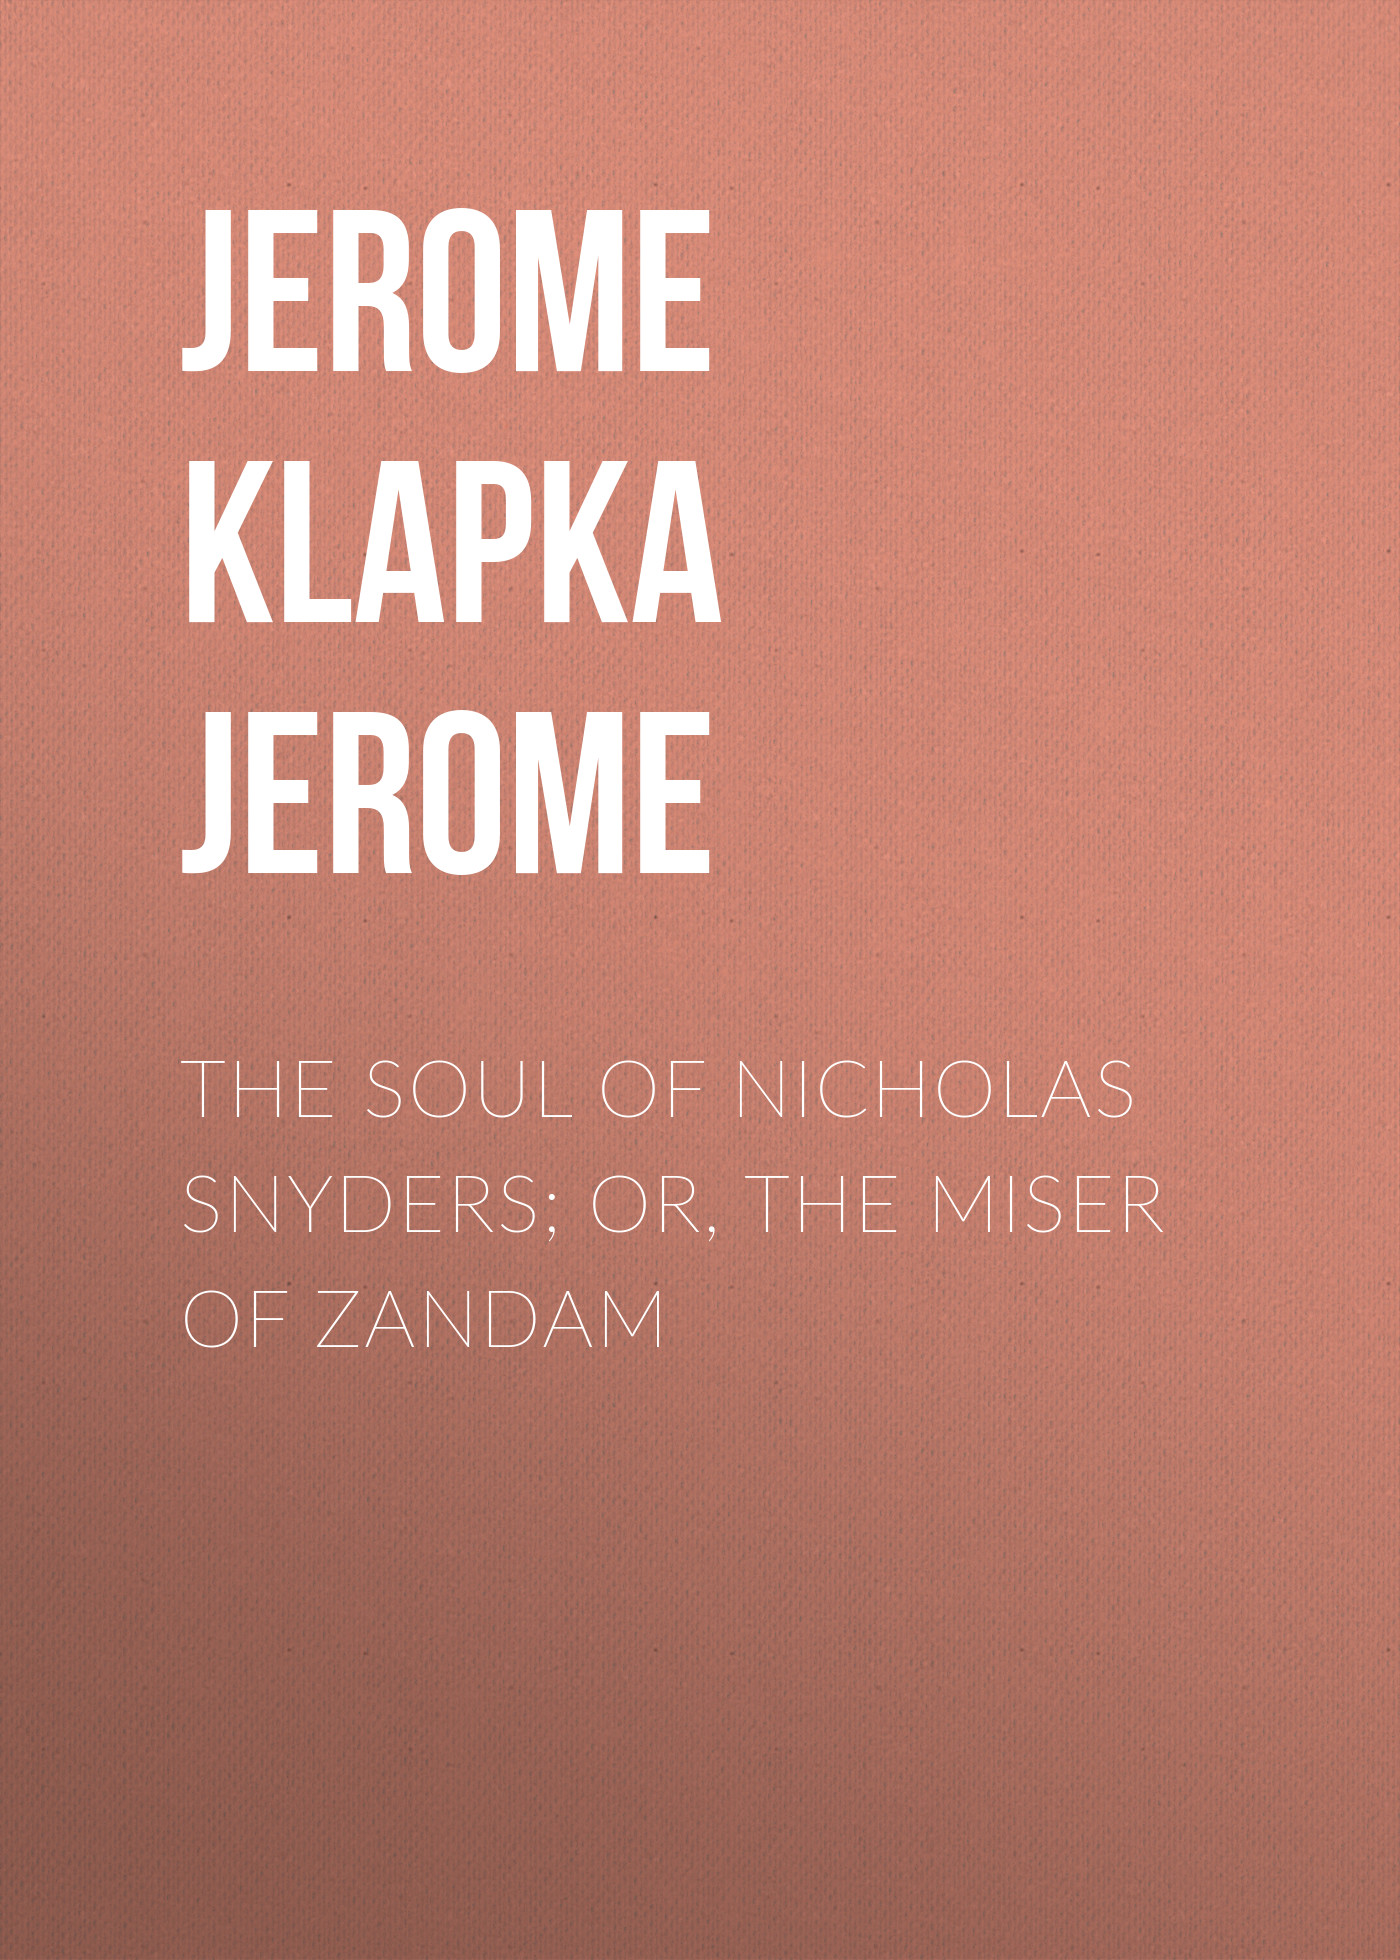 Джером Клапка Джером The Soul of Nicholas Snyders; Or, The Miser of Zandam джером клапка джером diary of a pilgrimage